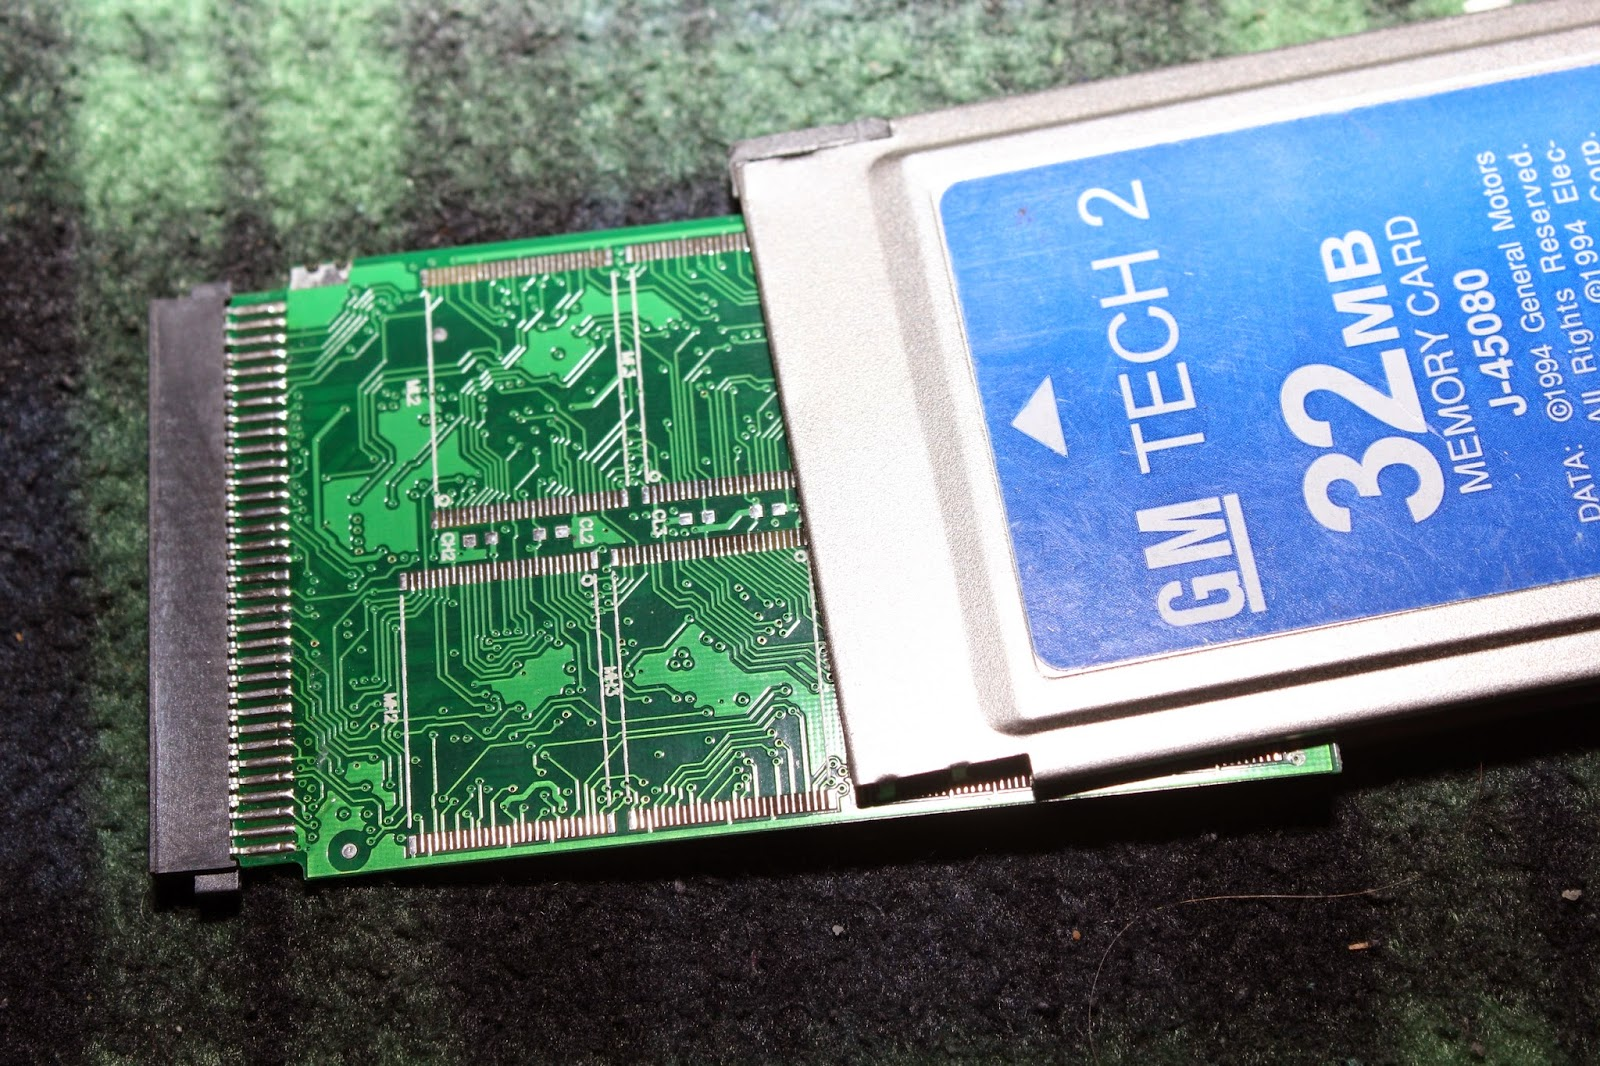 tech2-PCMCIA-card-review-2